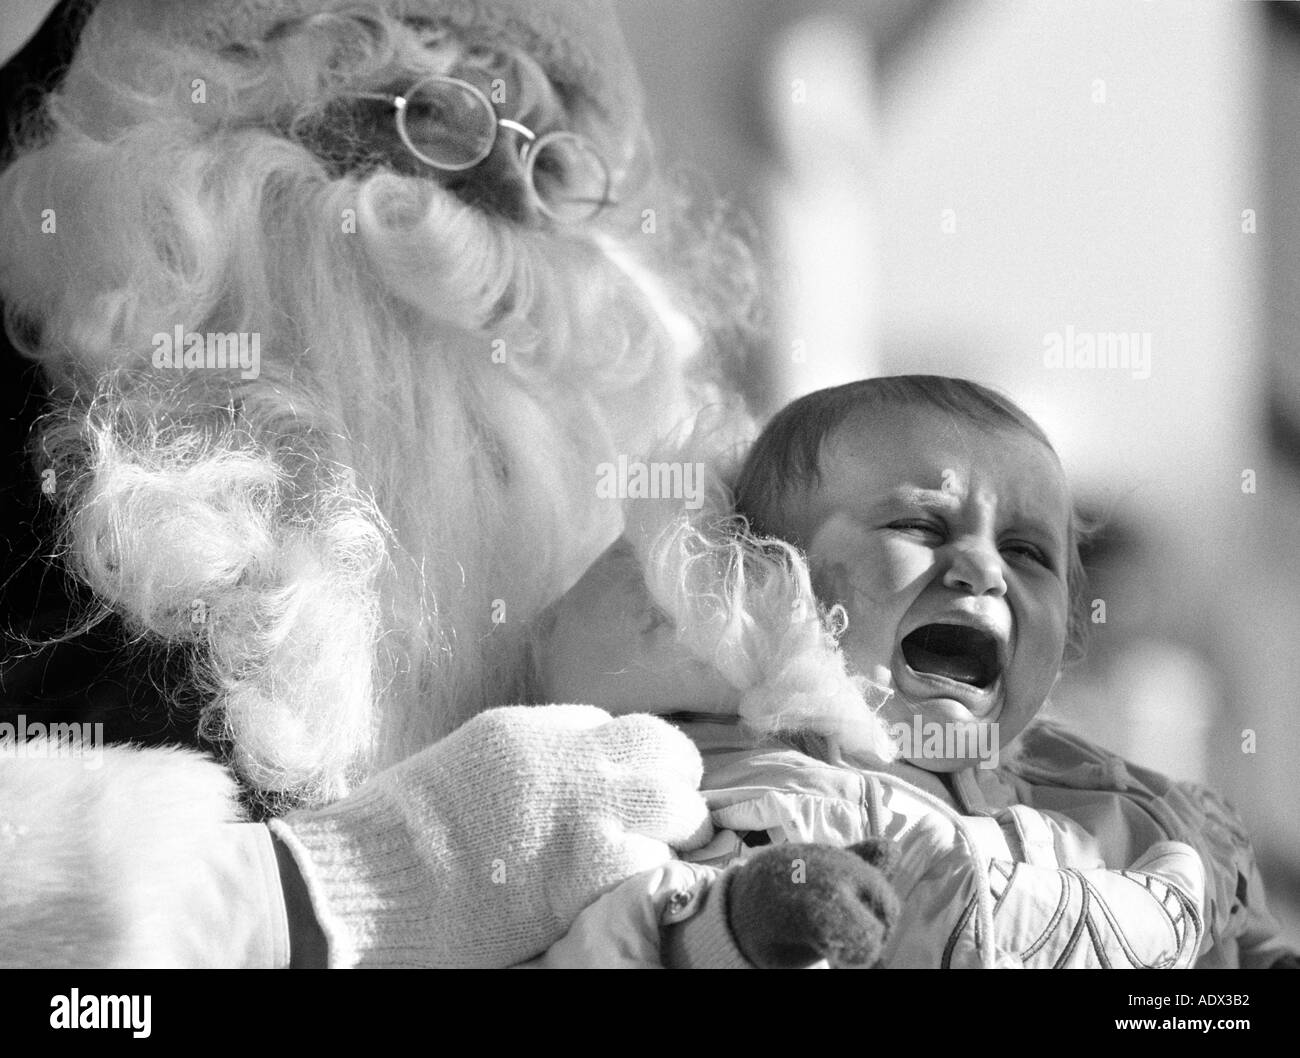 Fake santa claus holding crying baby scared child humor st nick saint nick christmas party - Stock Image